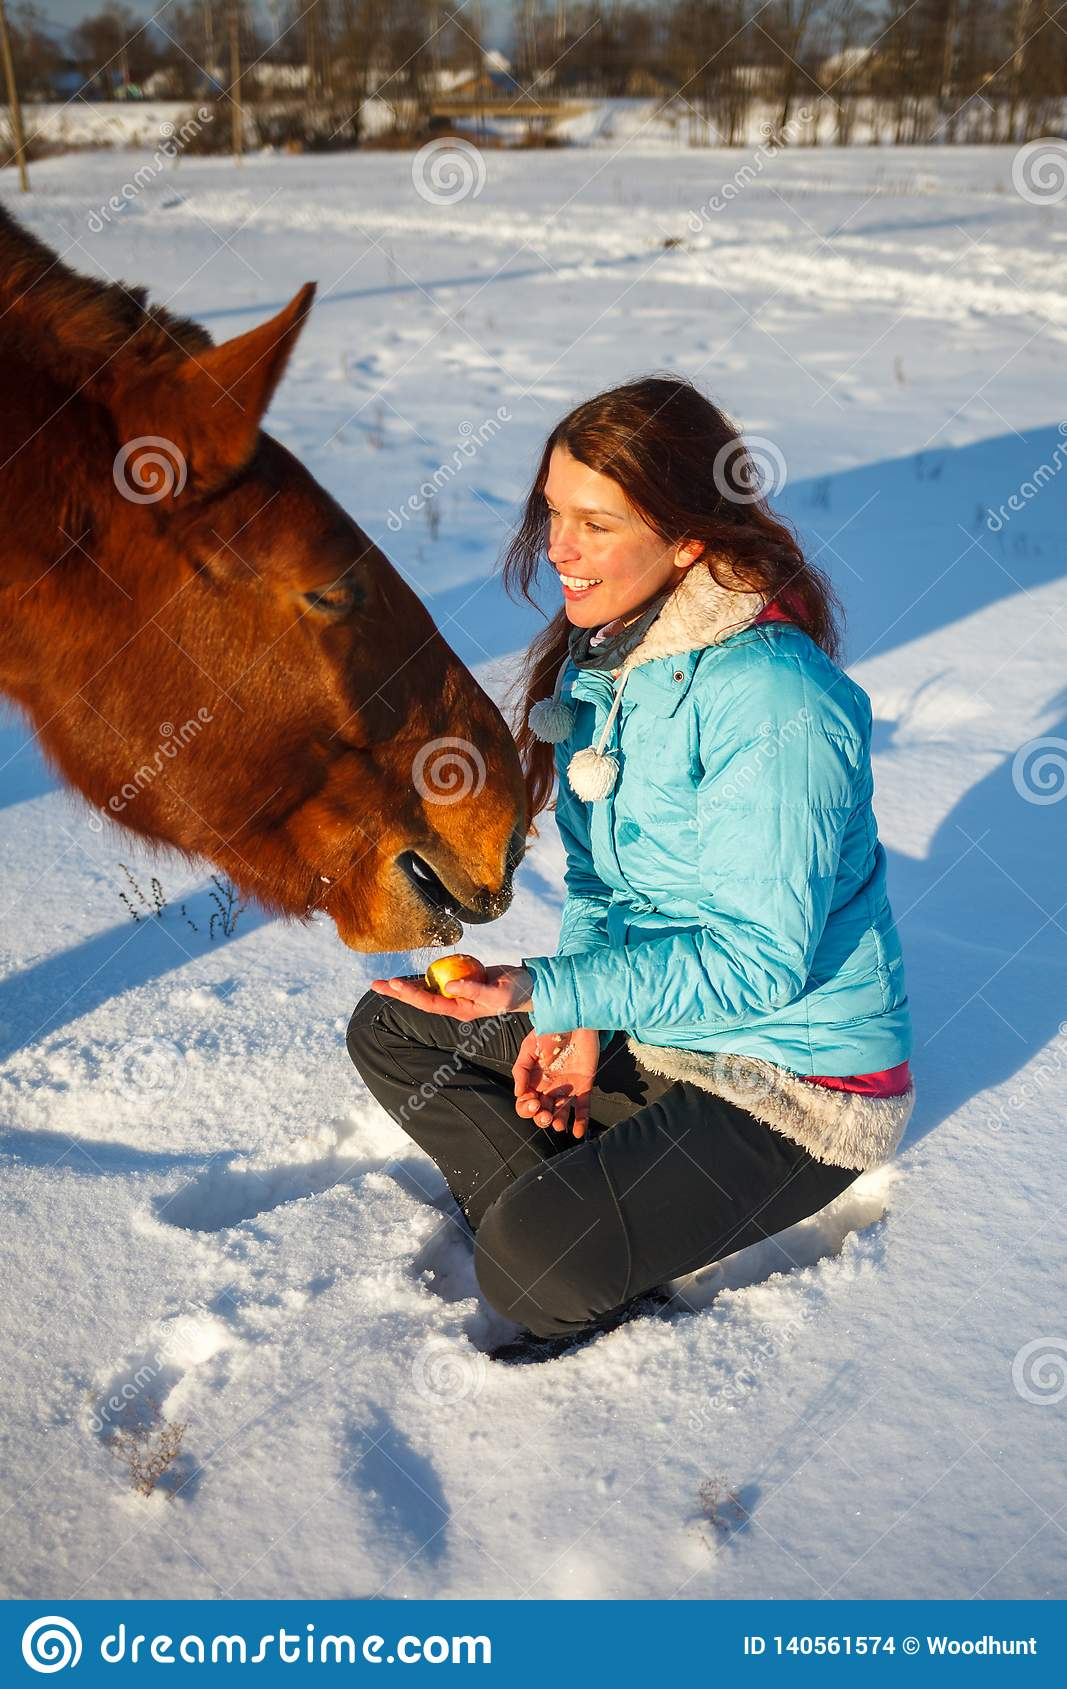 Red-haired girl in a snowy field feeds an apple from hands